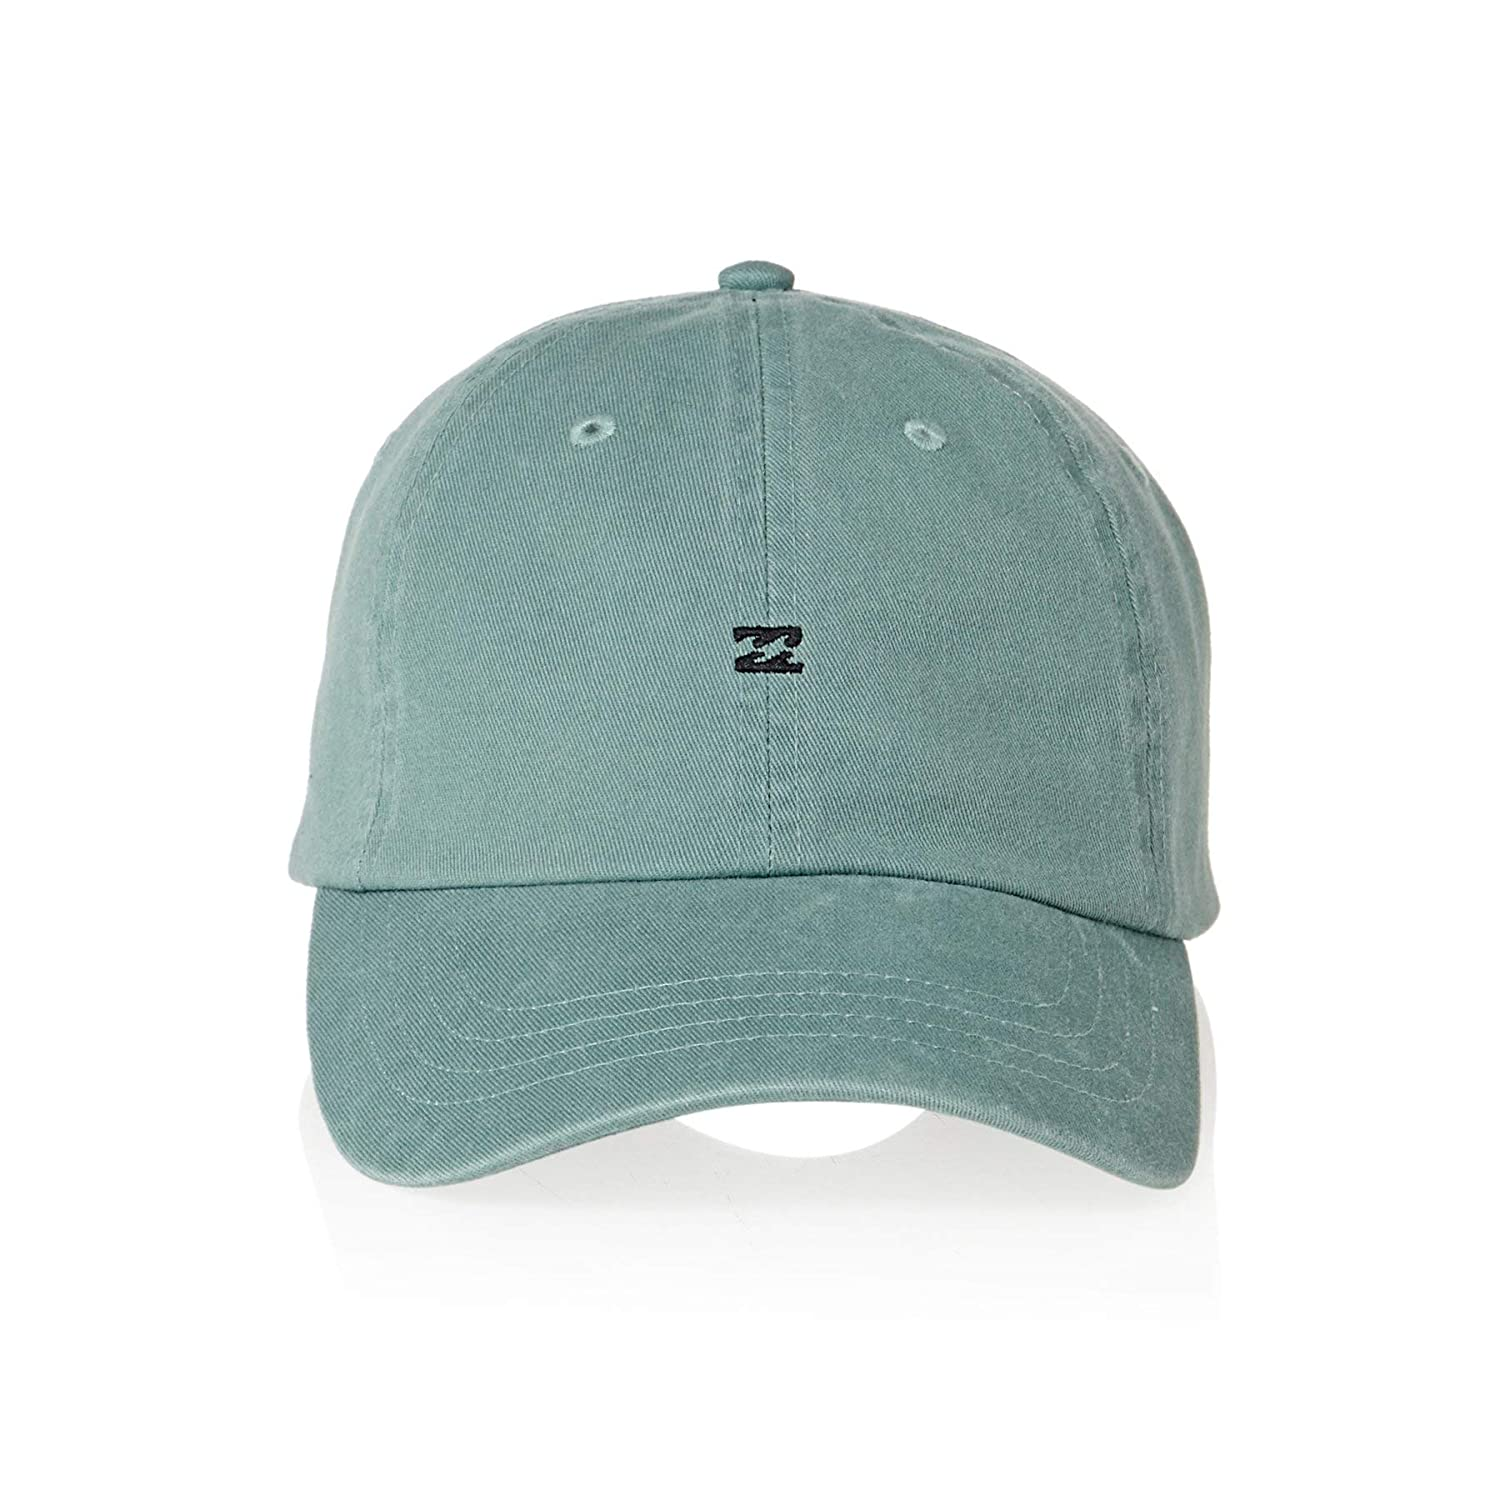 BILLABONG All Day Lad Cap One Size Dust Green  Amazon.co.uk  Clothing 390b4c15e68